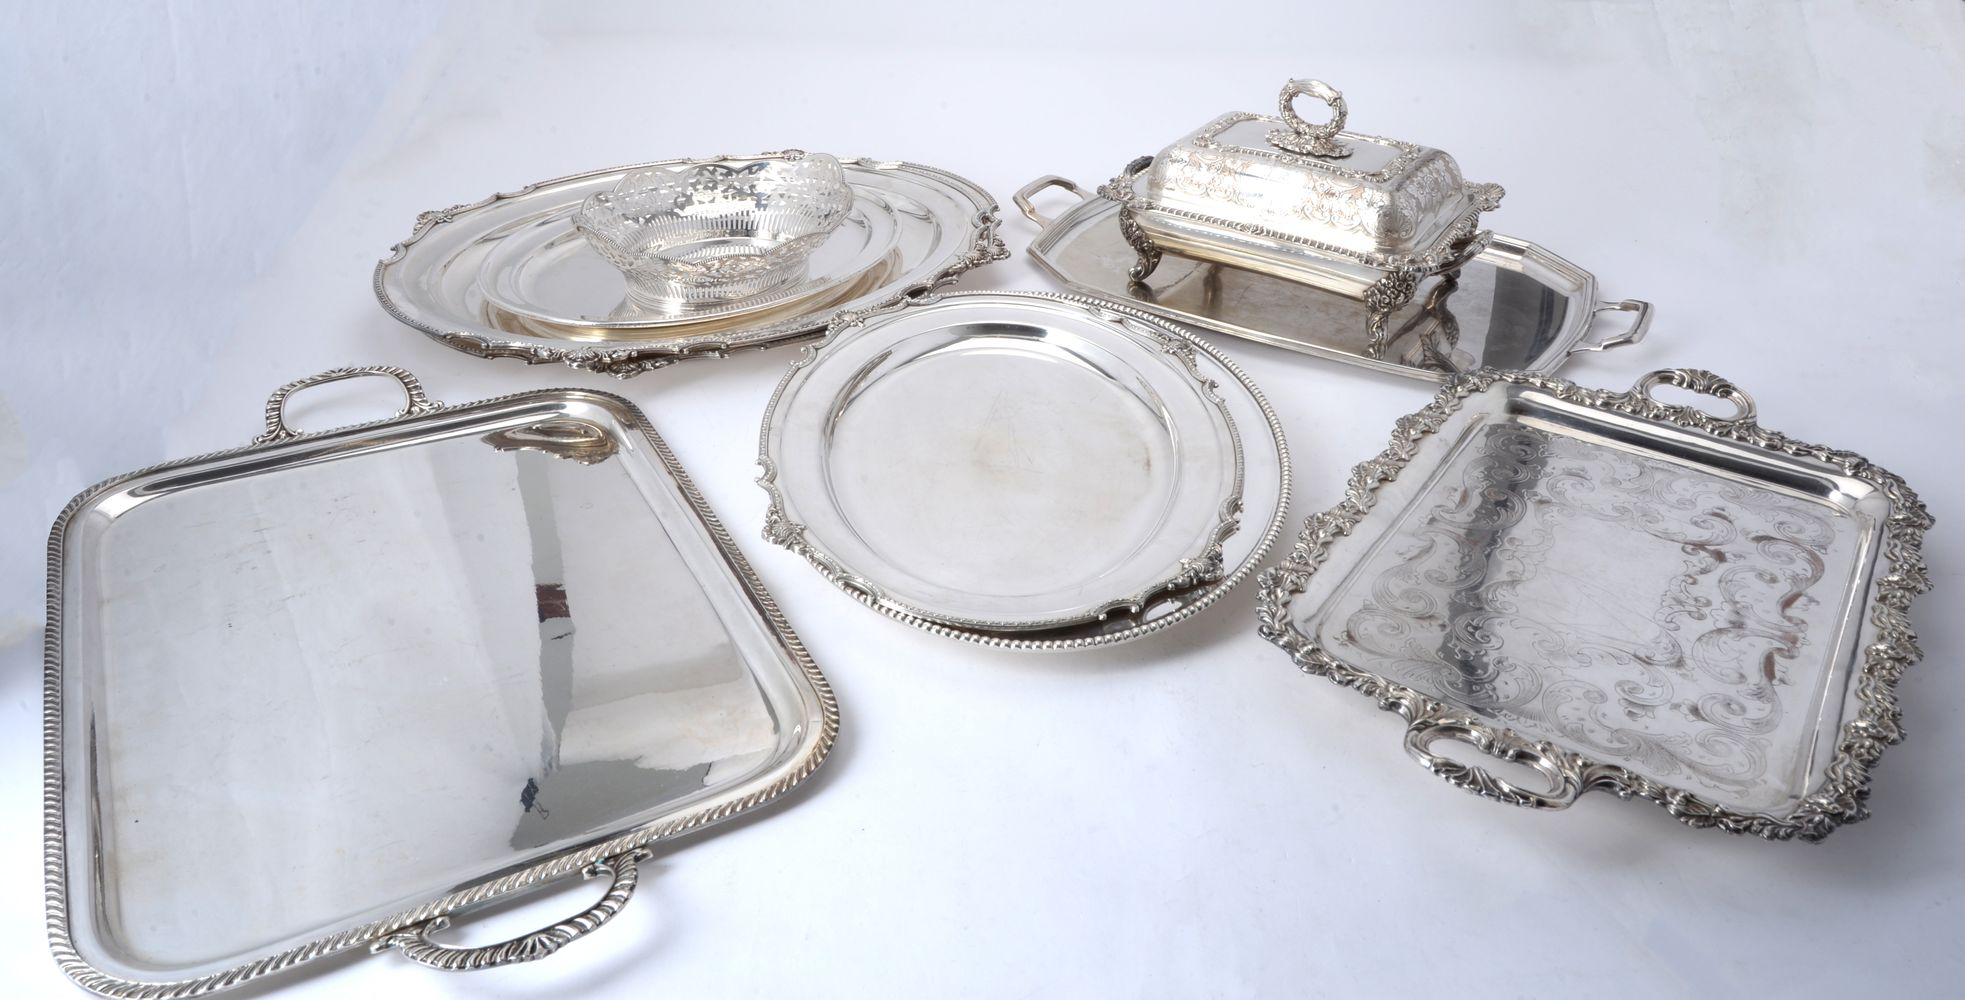 Lot 705 - A quantity of electro-plated wares